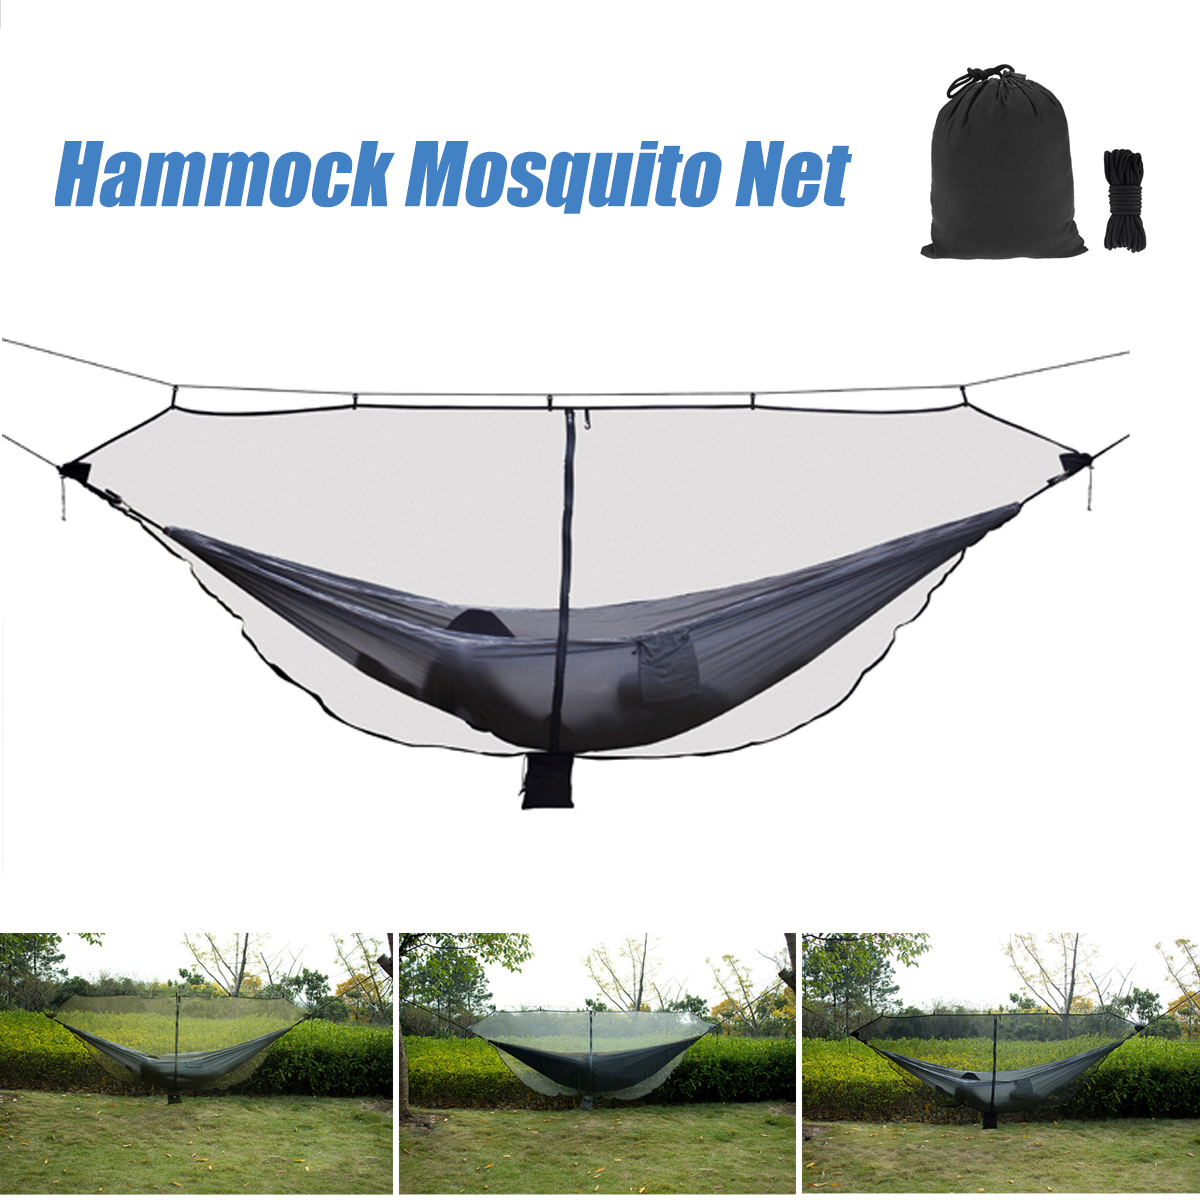 Separate Hammock Mosquito Nets Outdoor Yard Travel 1-2 Person Portable Double Mosquito Hammock Mosquito Net fancy forest backdrops for photo outdoor shooting photography backgrounds for photo studio photographic background fotografia